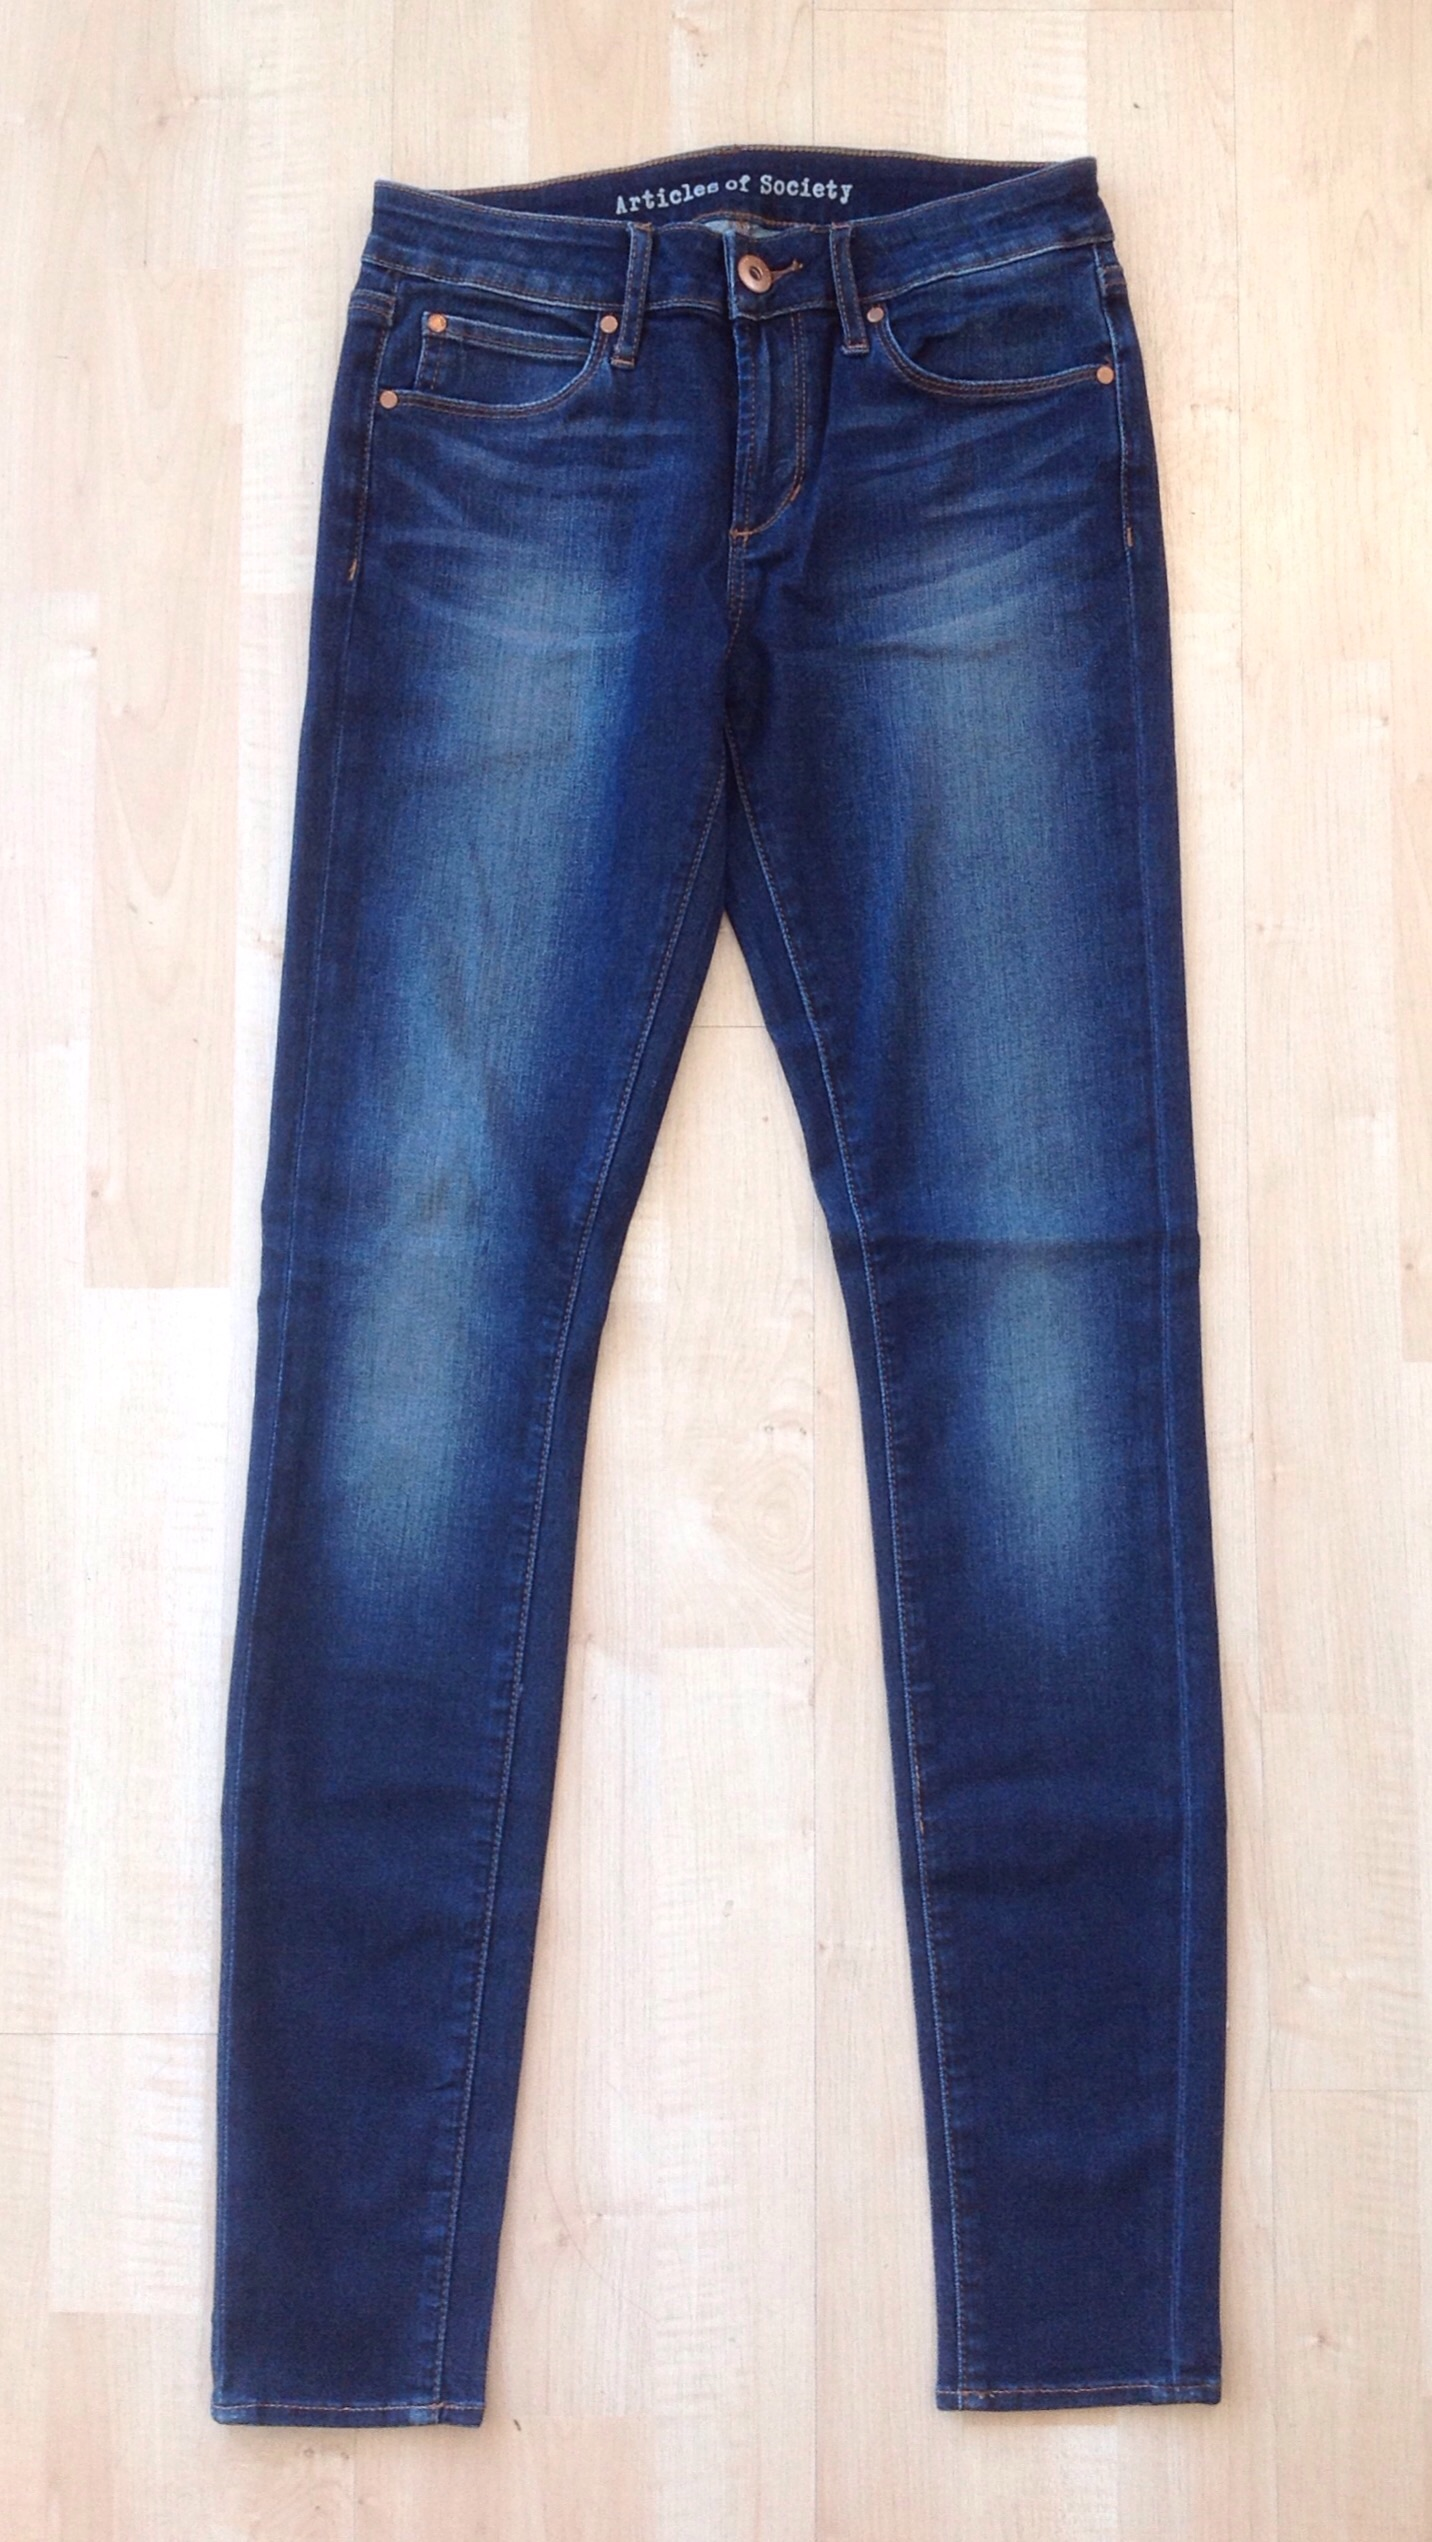 Articles of Society soft skinny jeans, $59